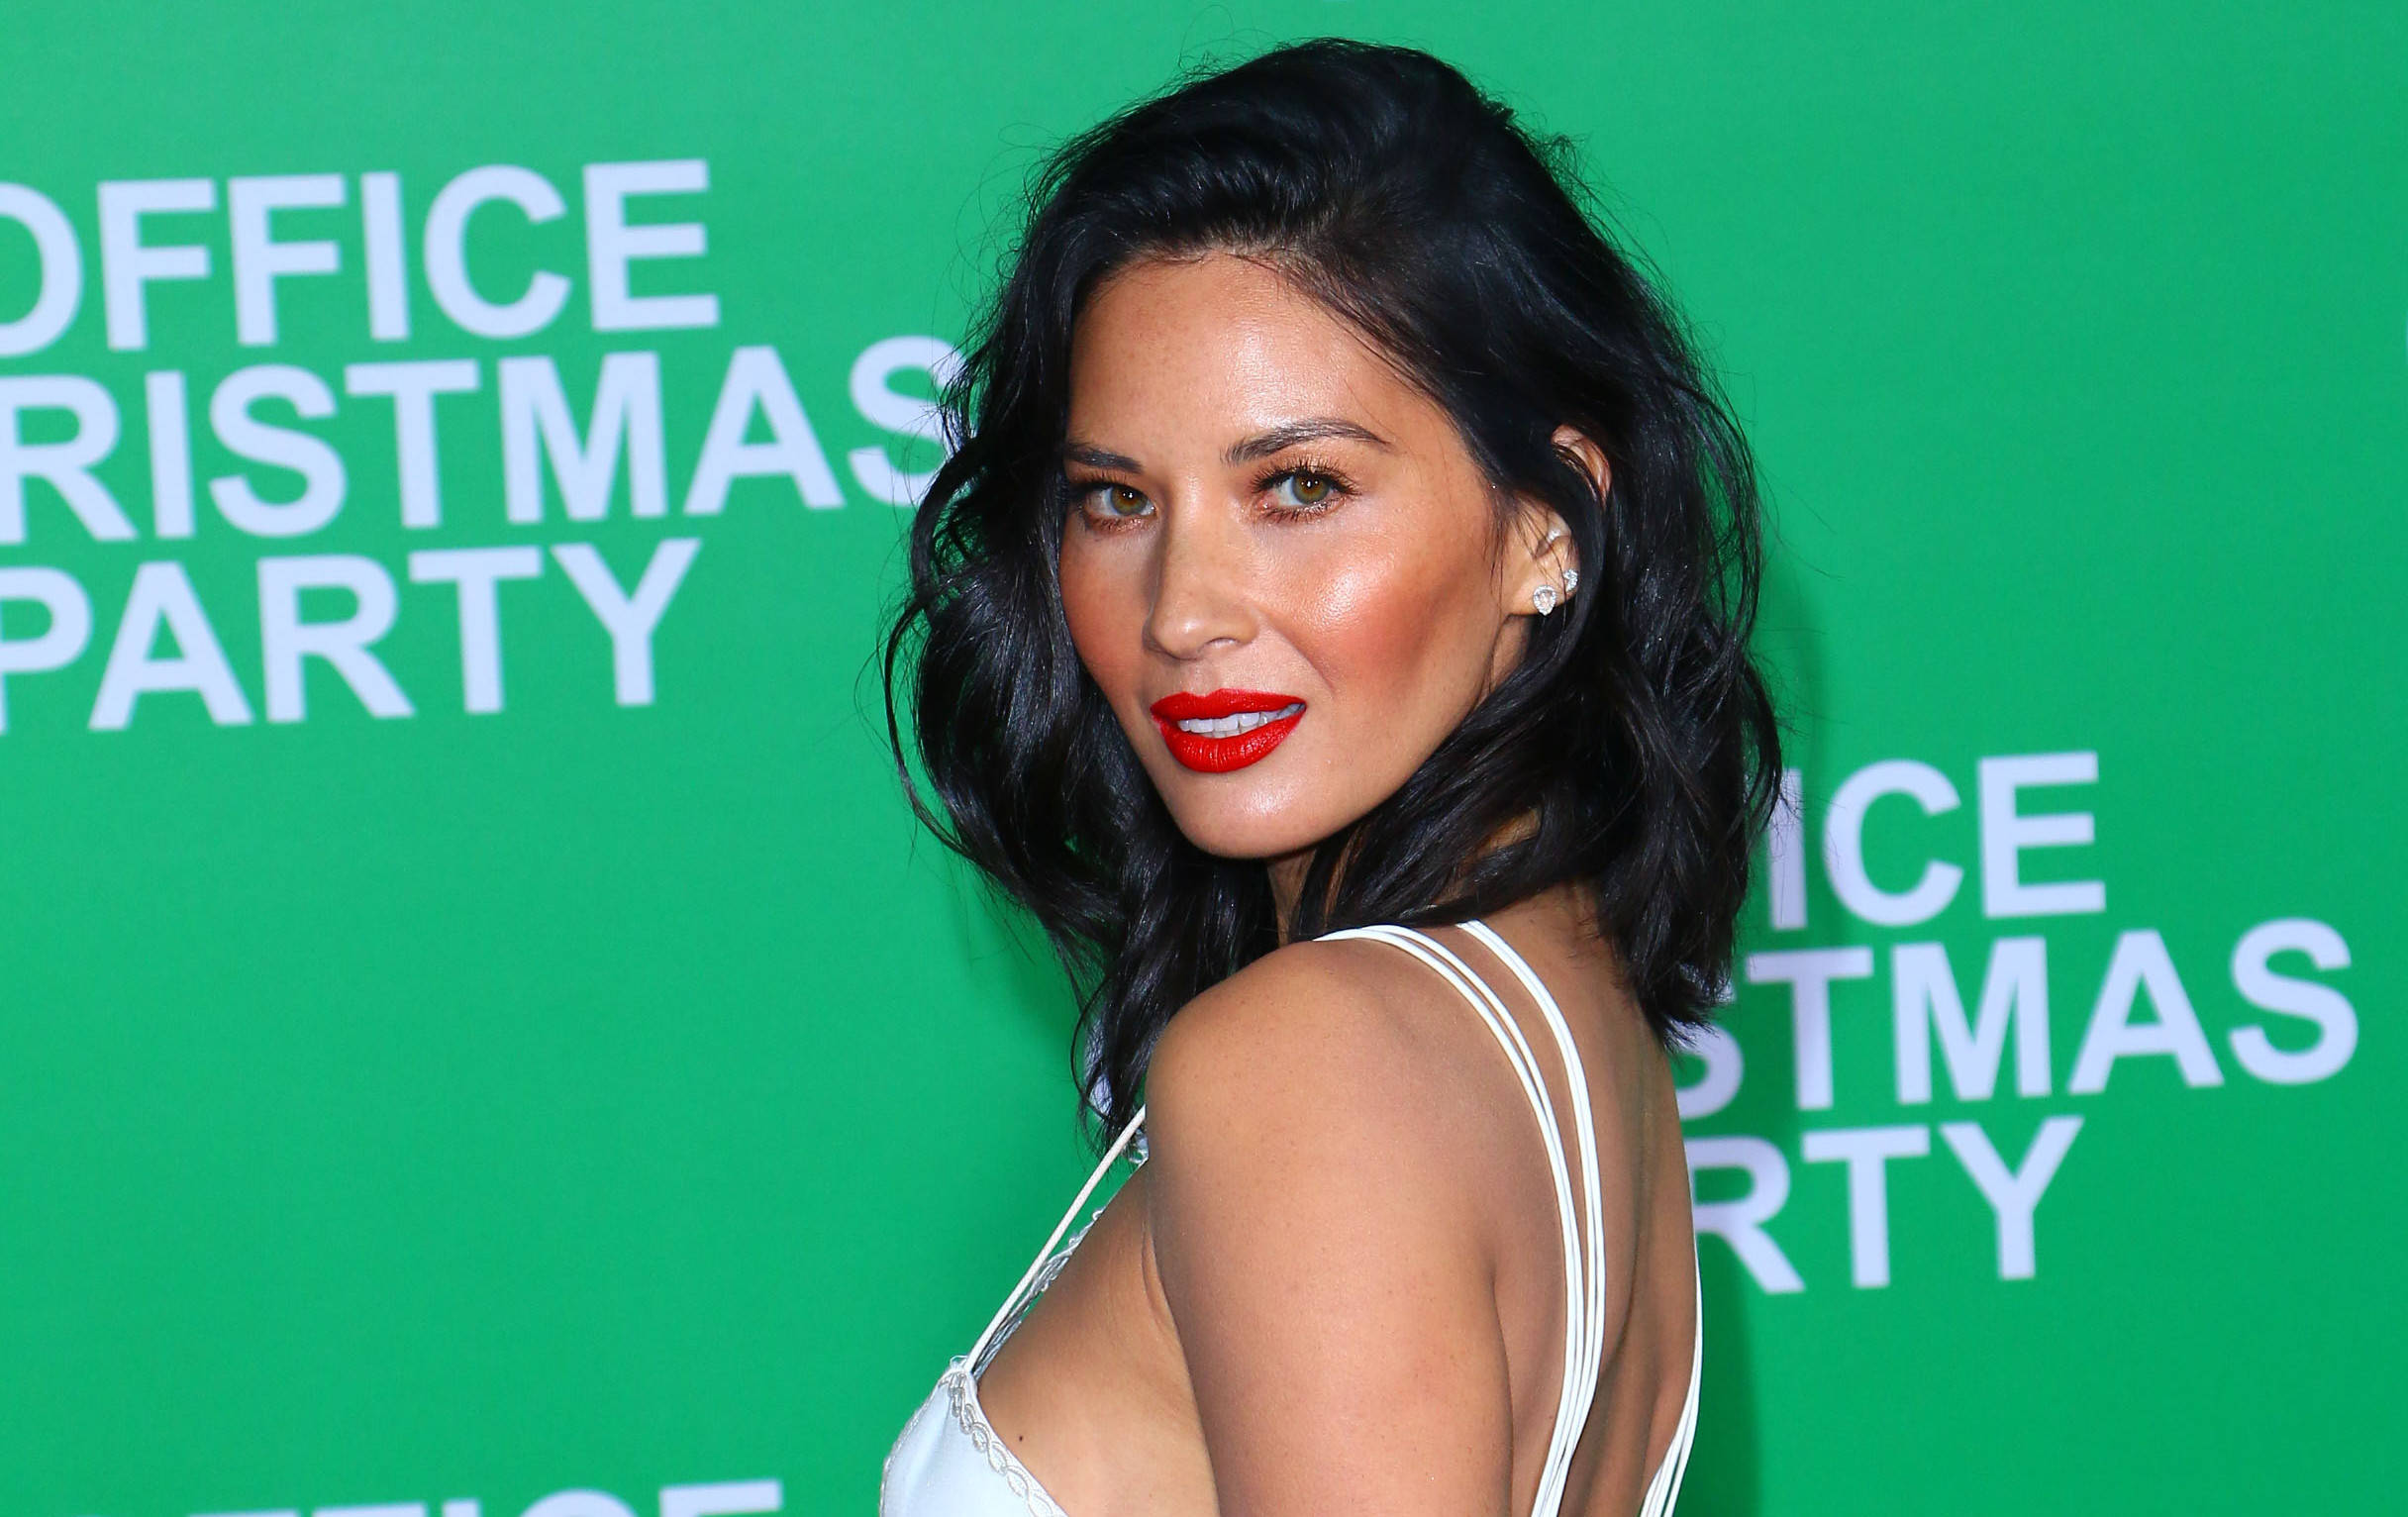 Olivia Munn Shades Aaron Rodgers' Family in Letter | The Blemish